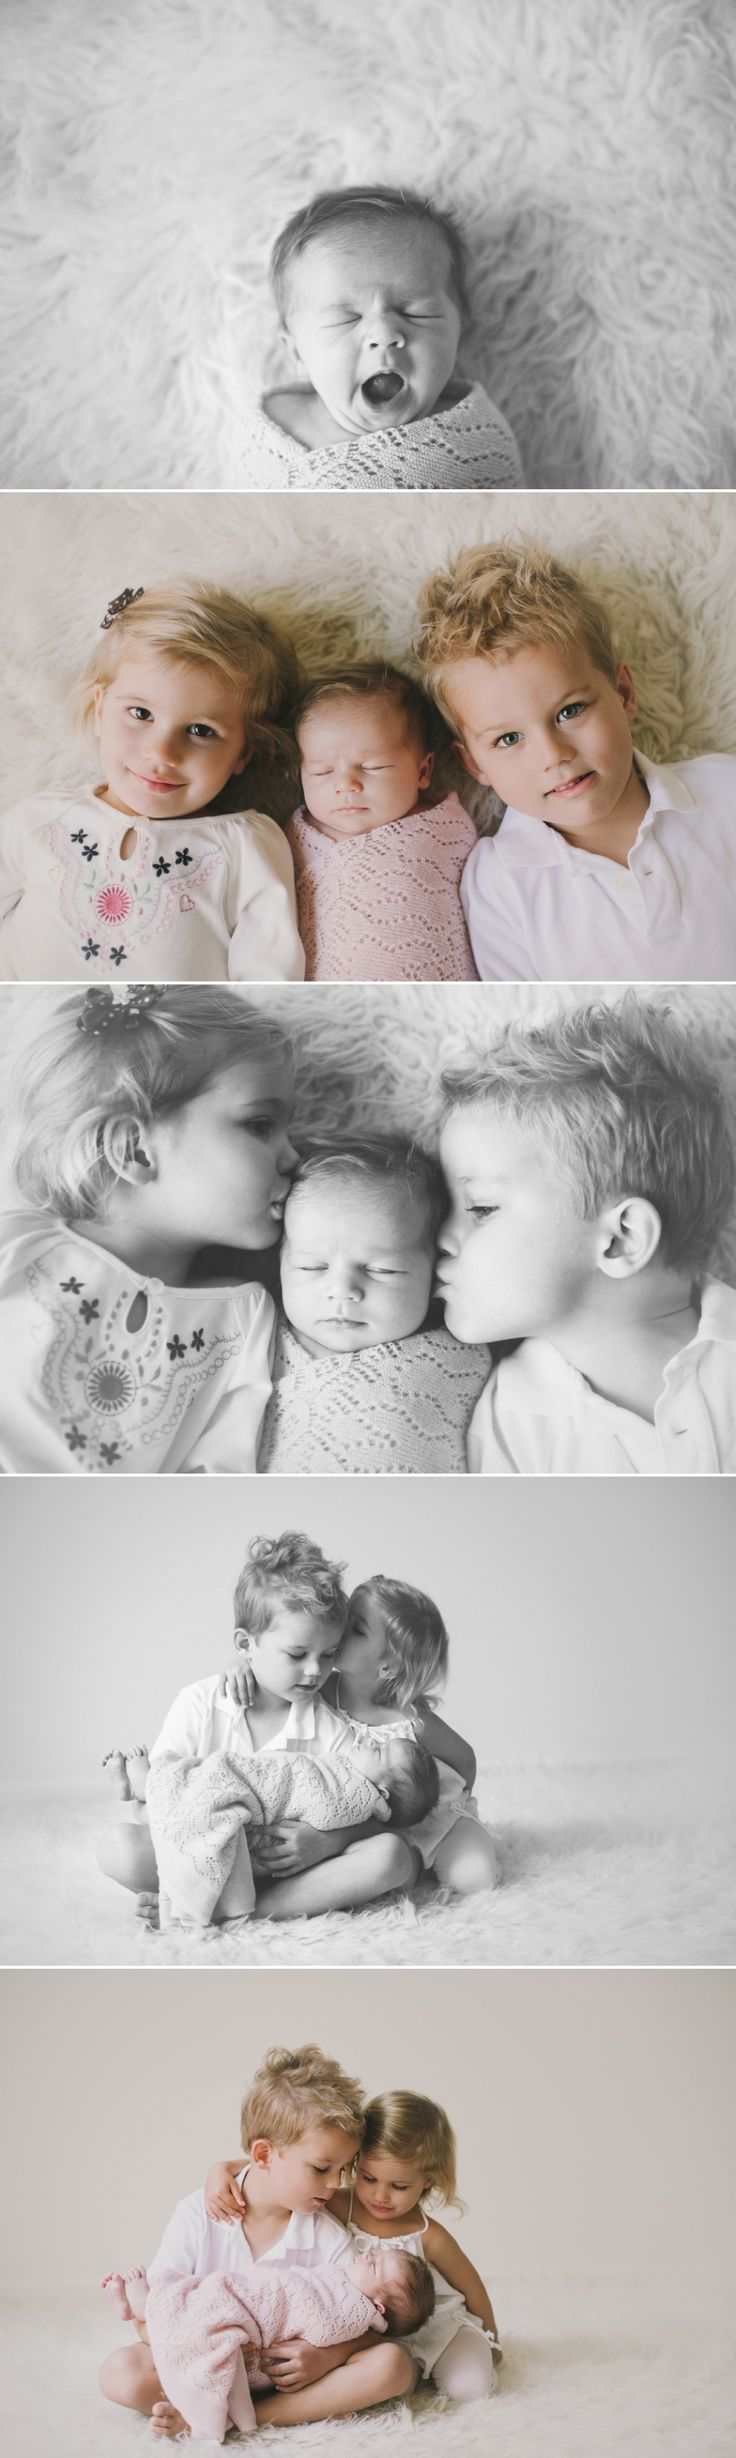 great sibling shots with newborn